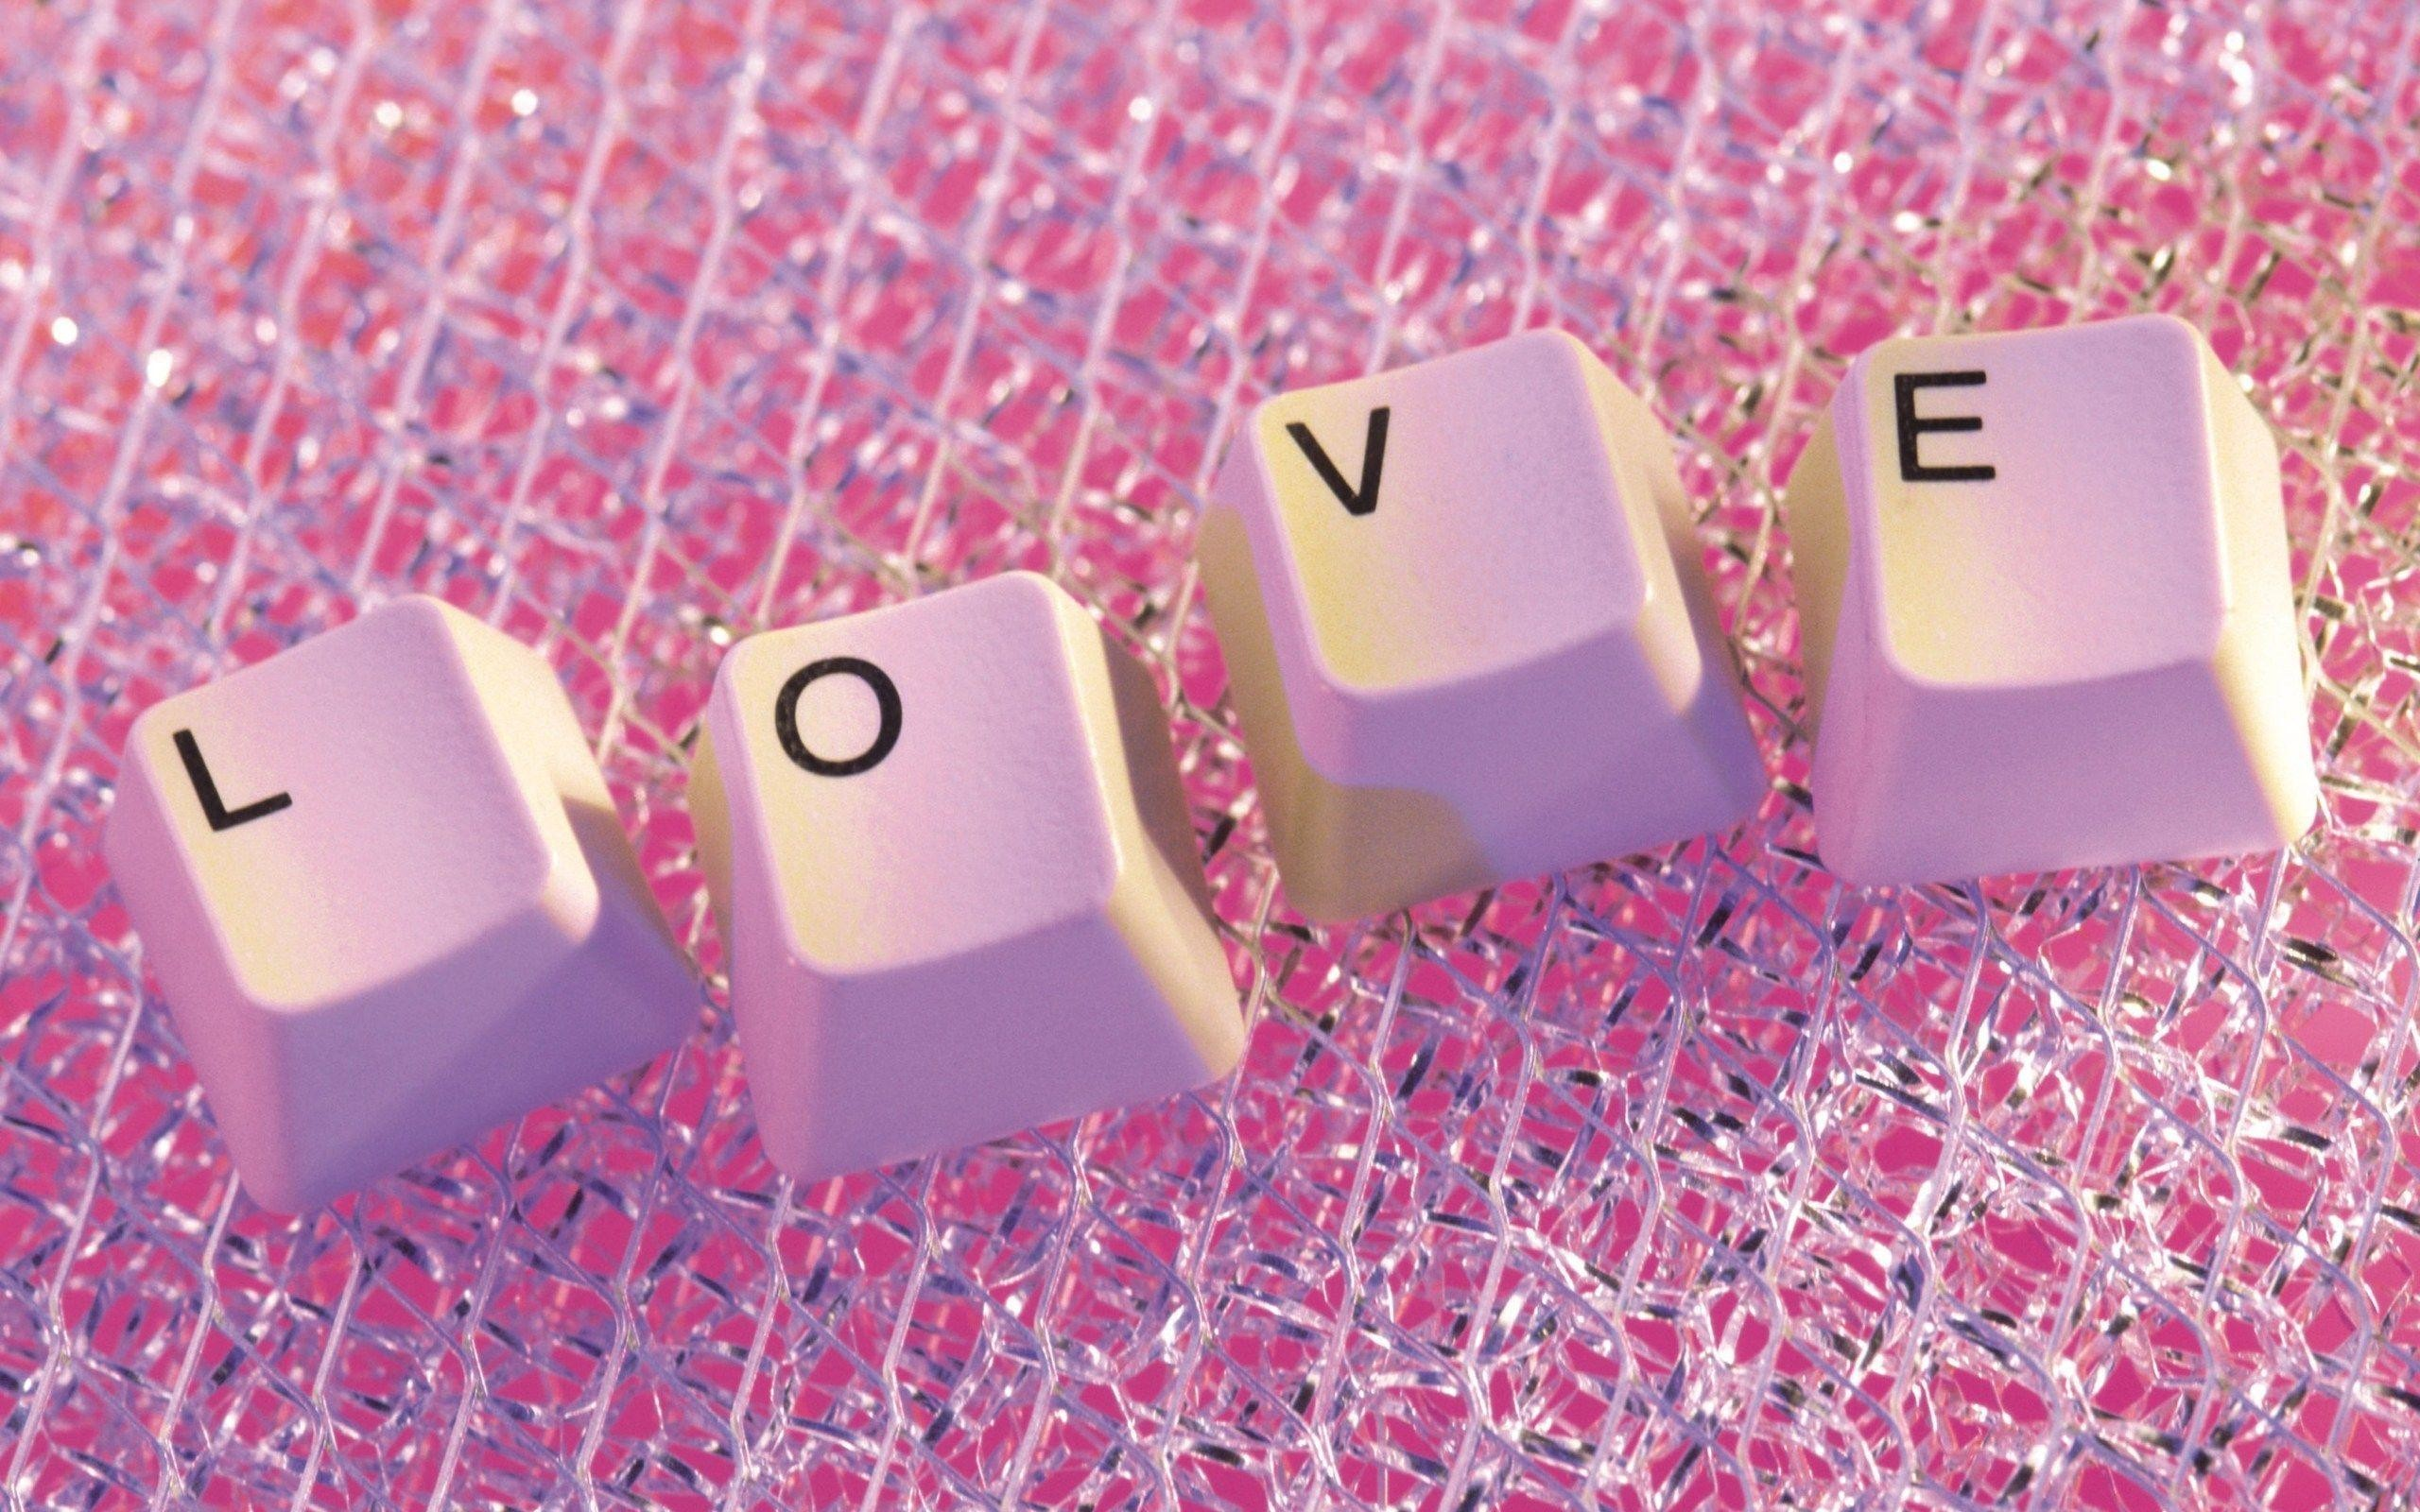 Res: 2560x1600, Love Word Free HD Wallpaper - Love Wallpapers